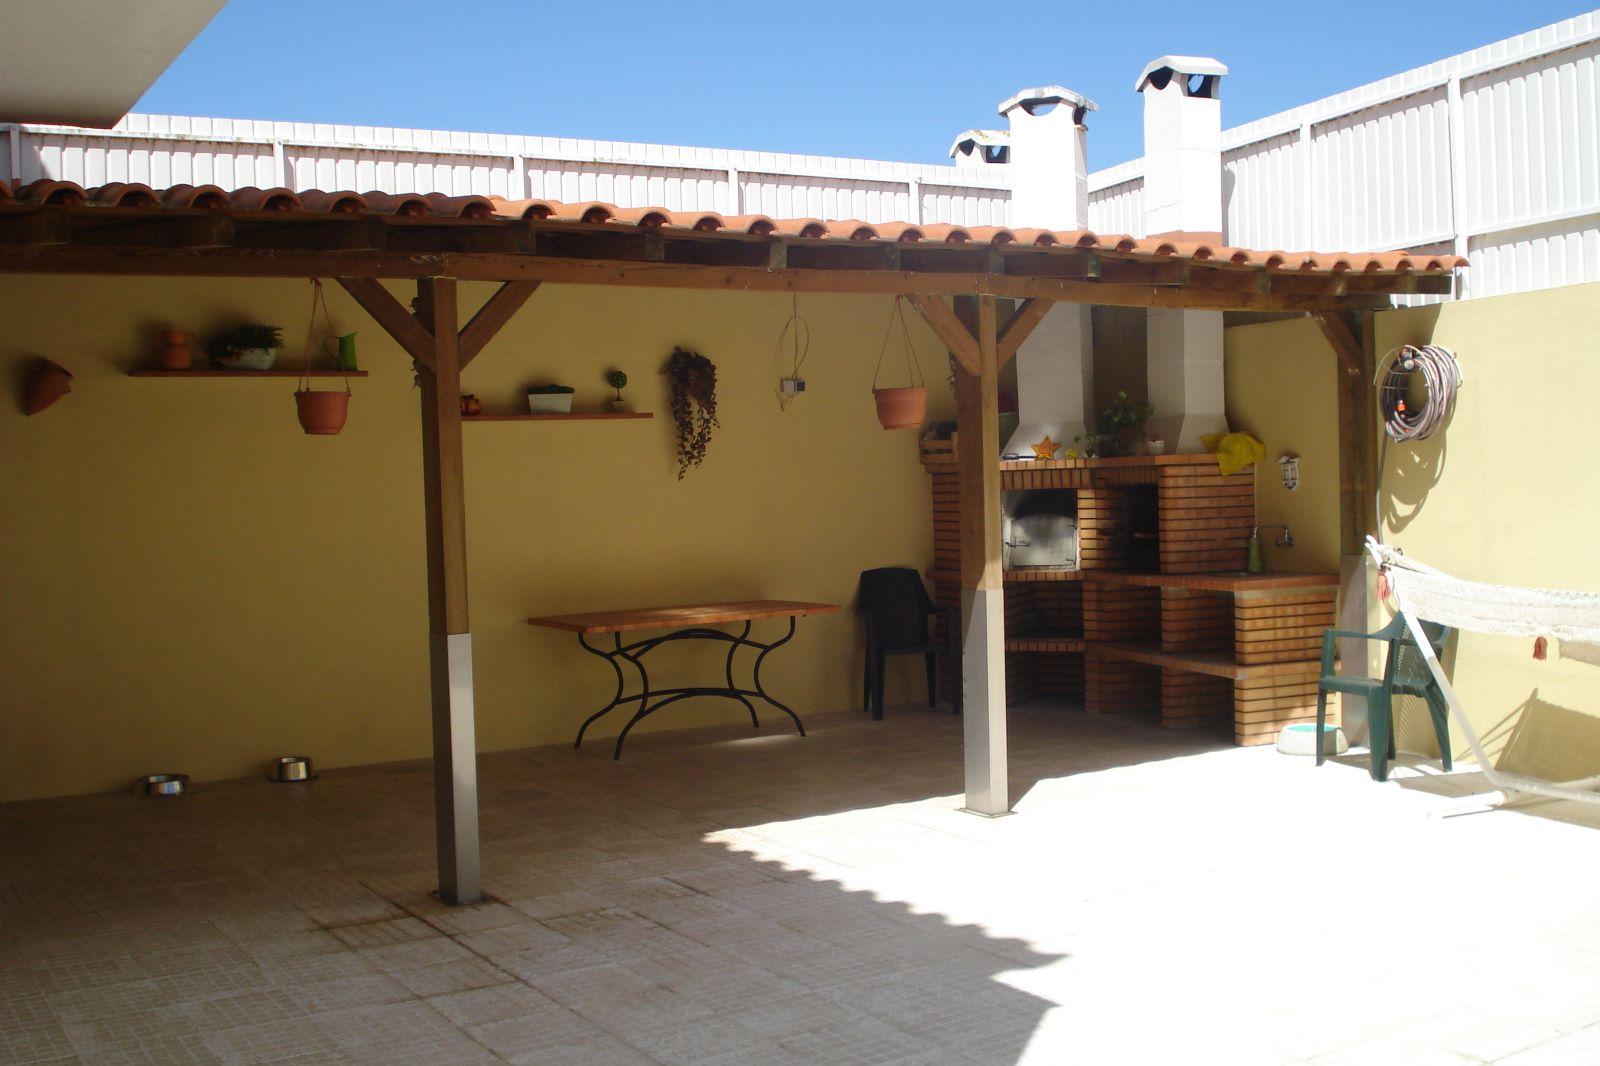 Home_for_sale_in_S. Domingos de Rana - Cascais_SCO8265